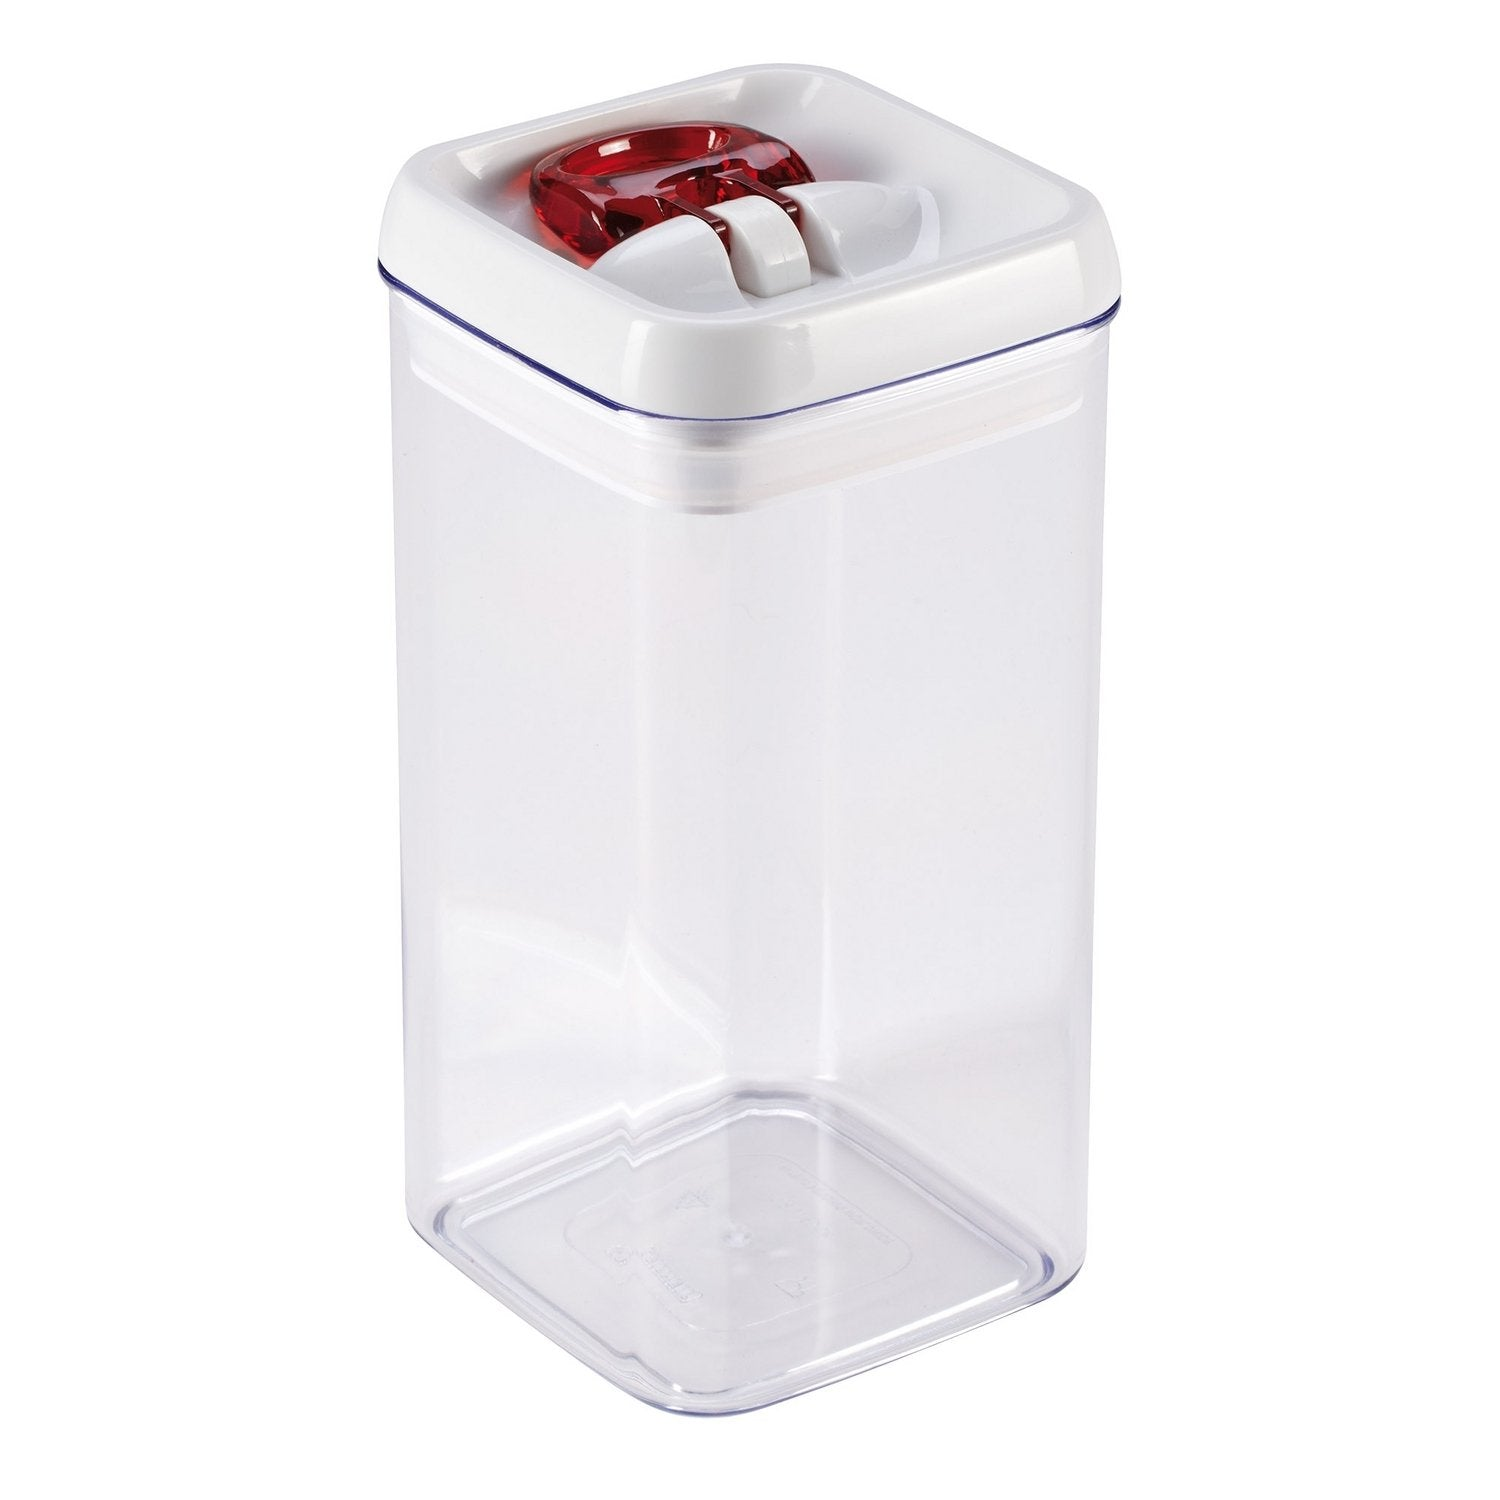 Leifheit新鲜&Easy Square Container 1.2L